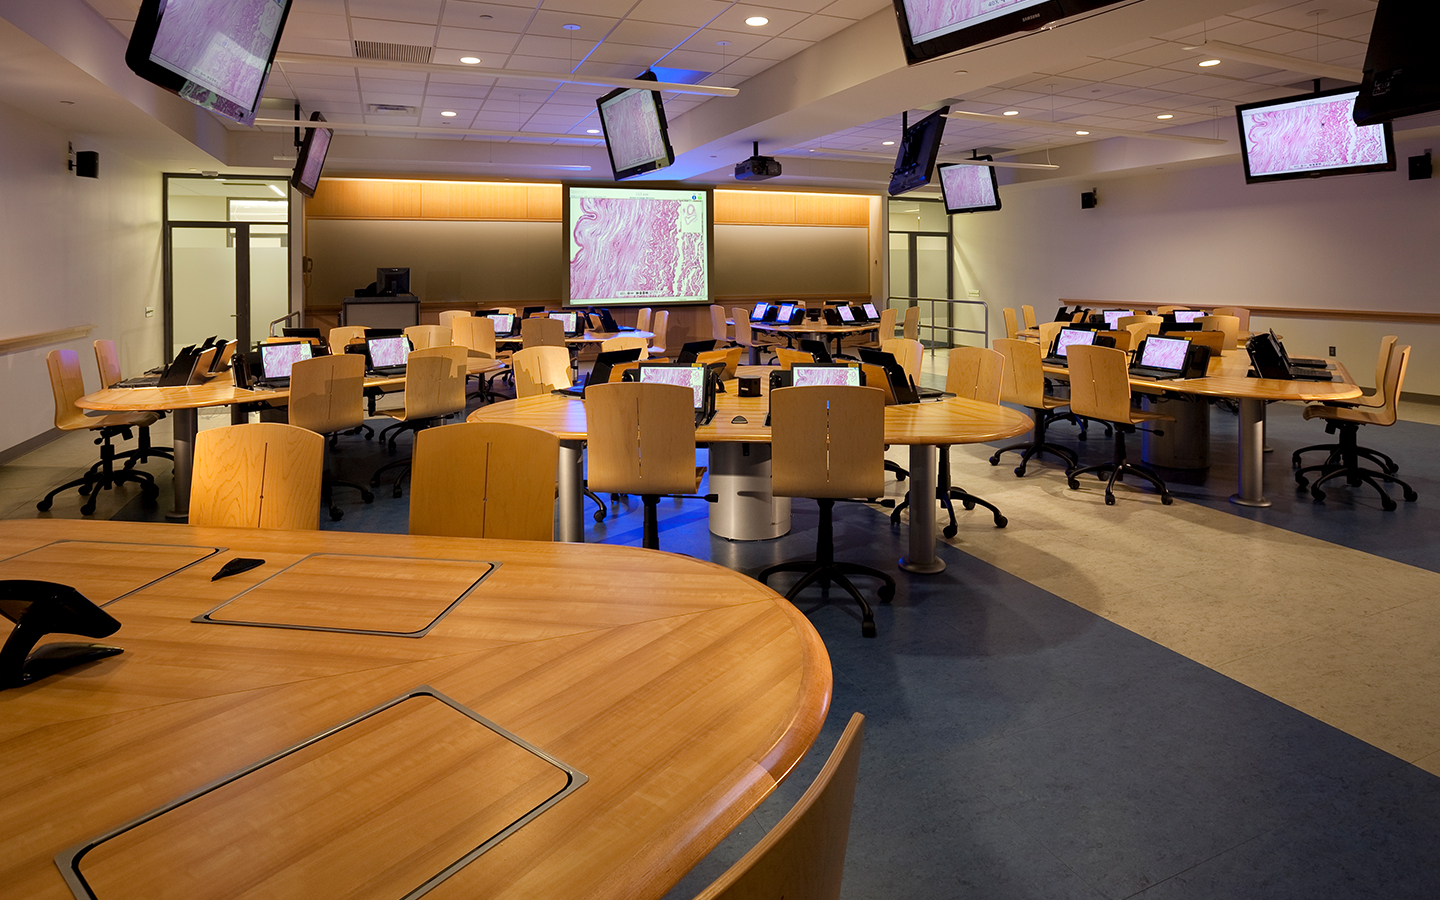 ergonomic furniture in the classroom chair shane dawson install from smartdesks and